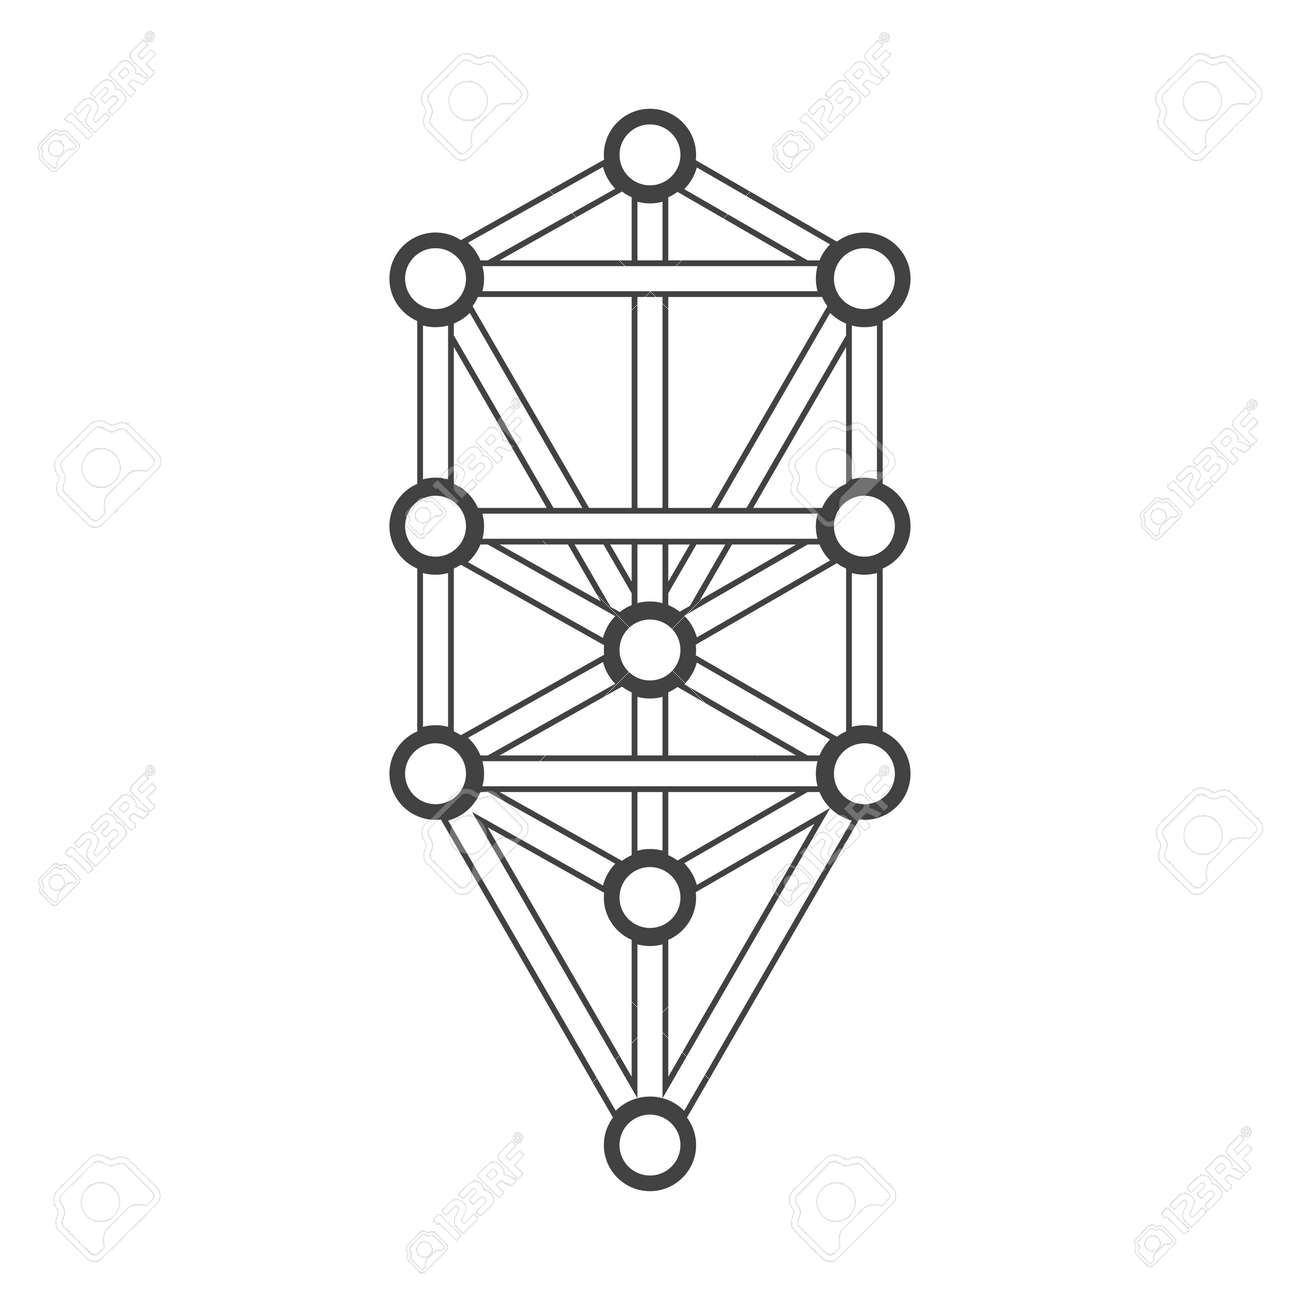 hight resolution of vector vector black outline tree of life illustration kabbalah diagram isolated white background